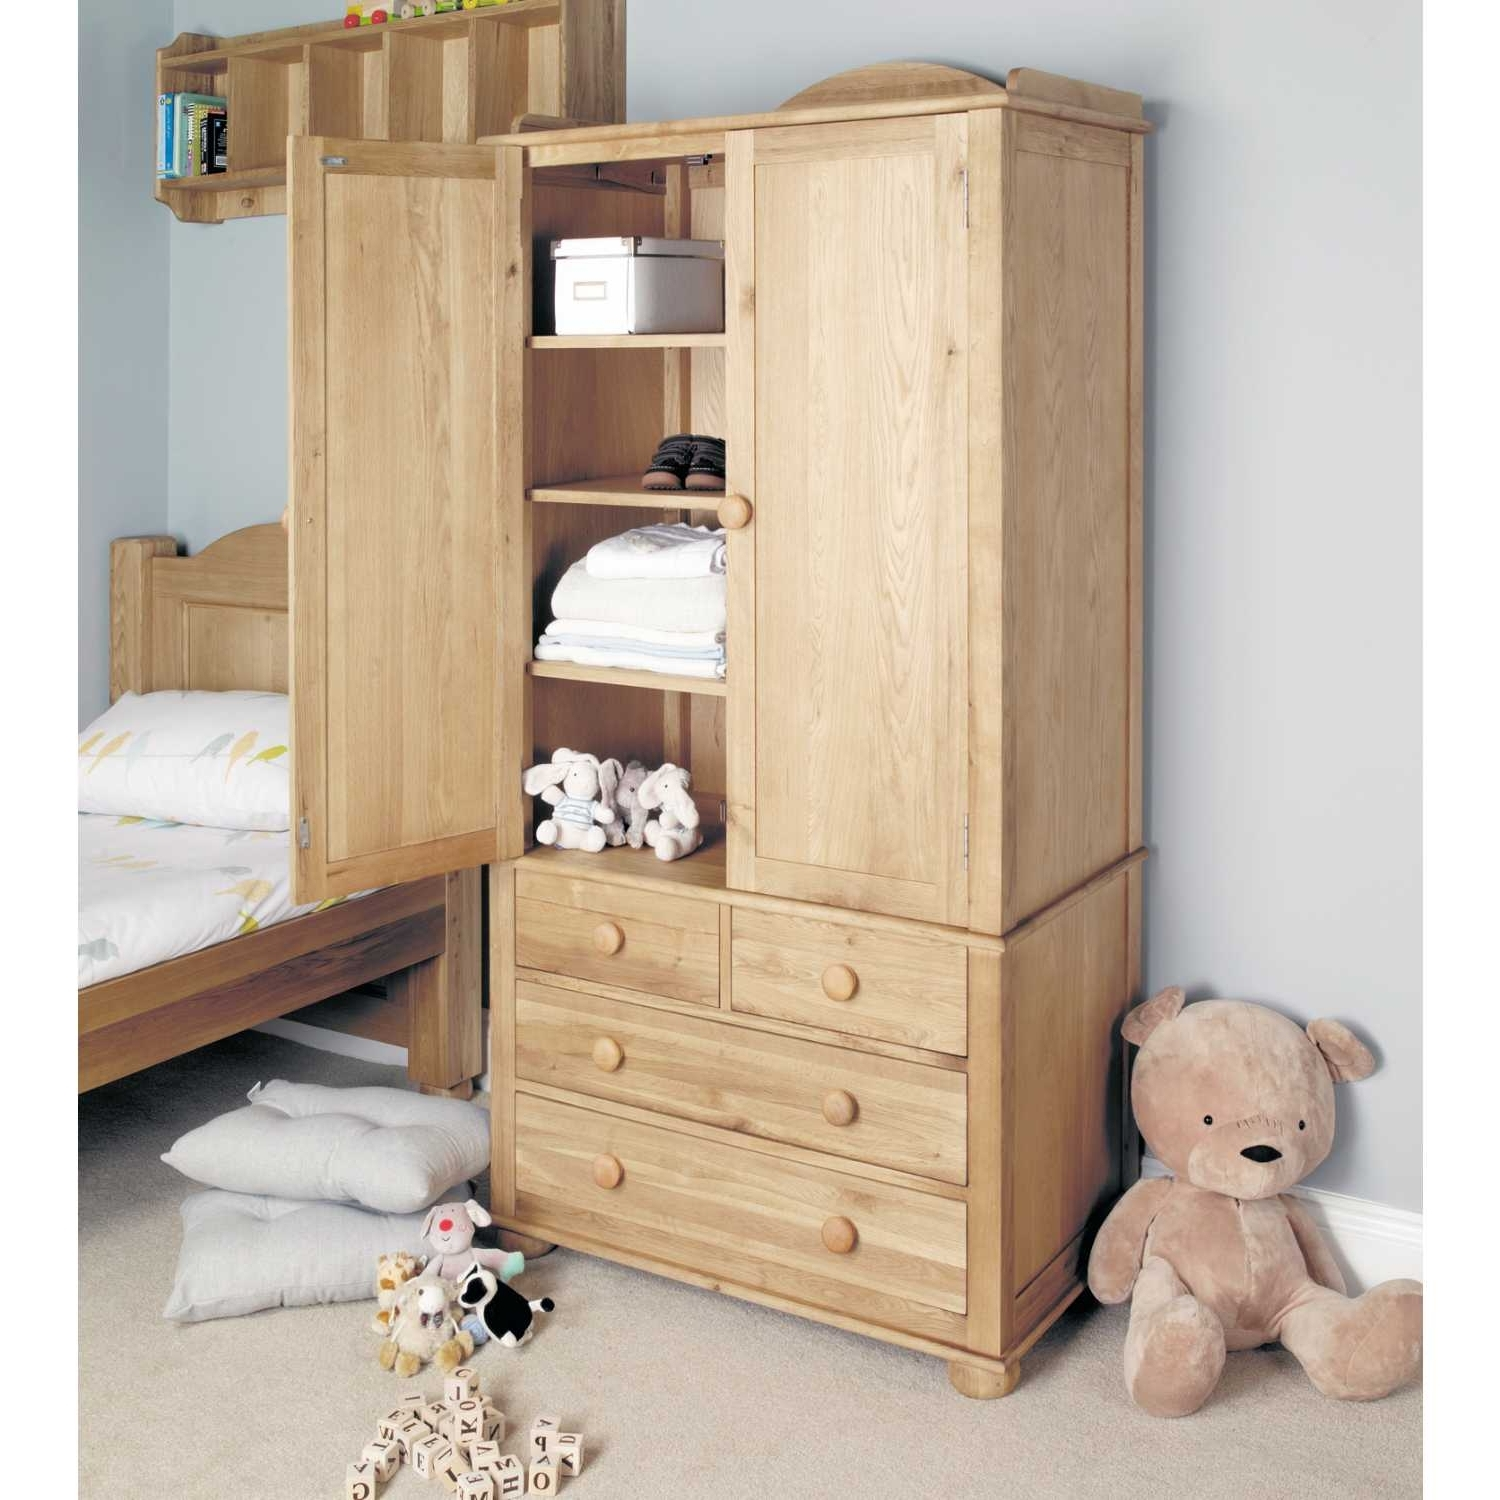 Triple Wardrobe With Shelves And Drawers • Drawer Ideas Inside Well Known Wardrobe With Drawers And Shelves (View 12 of 15)